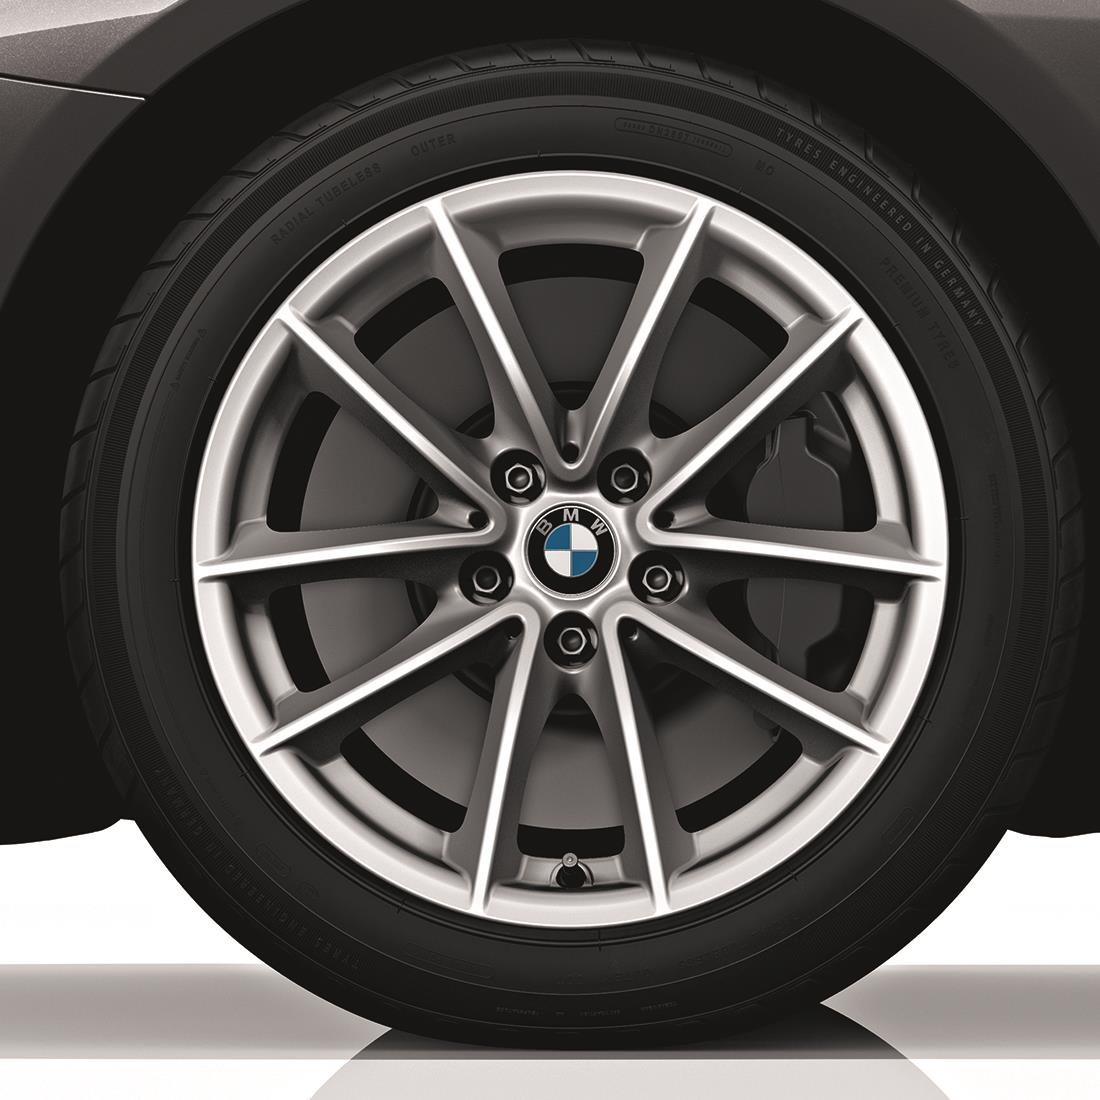 BMW Winter Complete Wheel & Tire Set, Style 618, in Silver